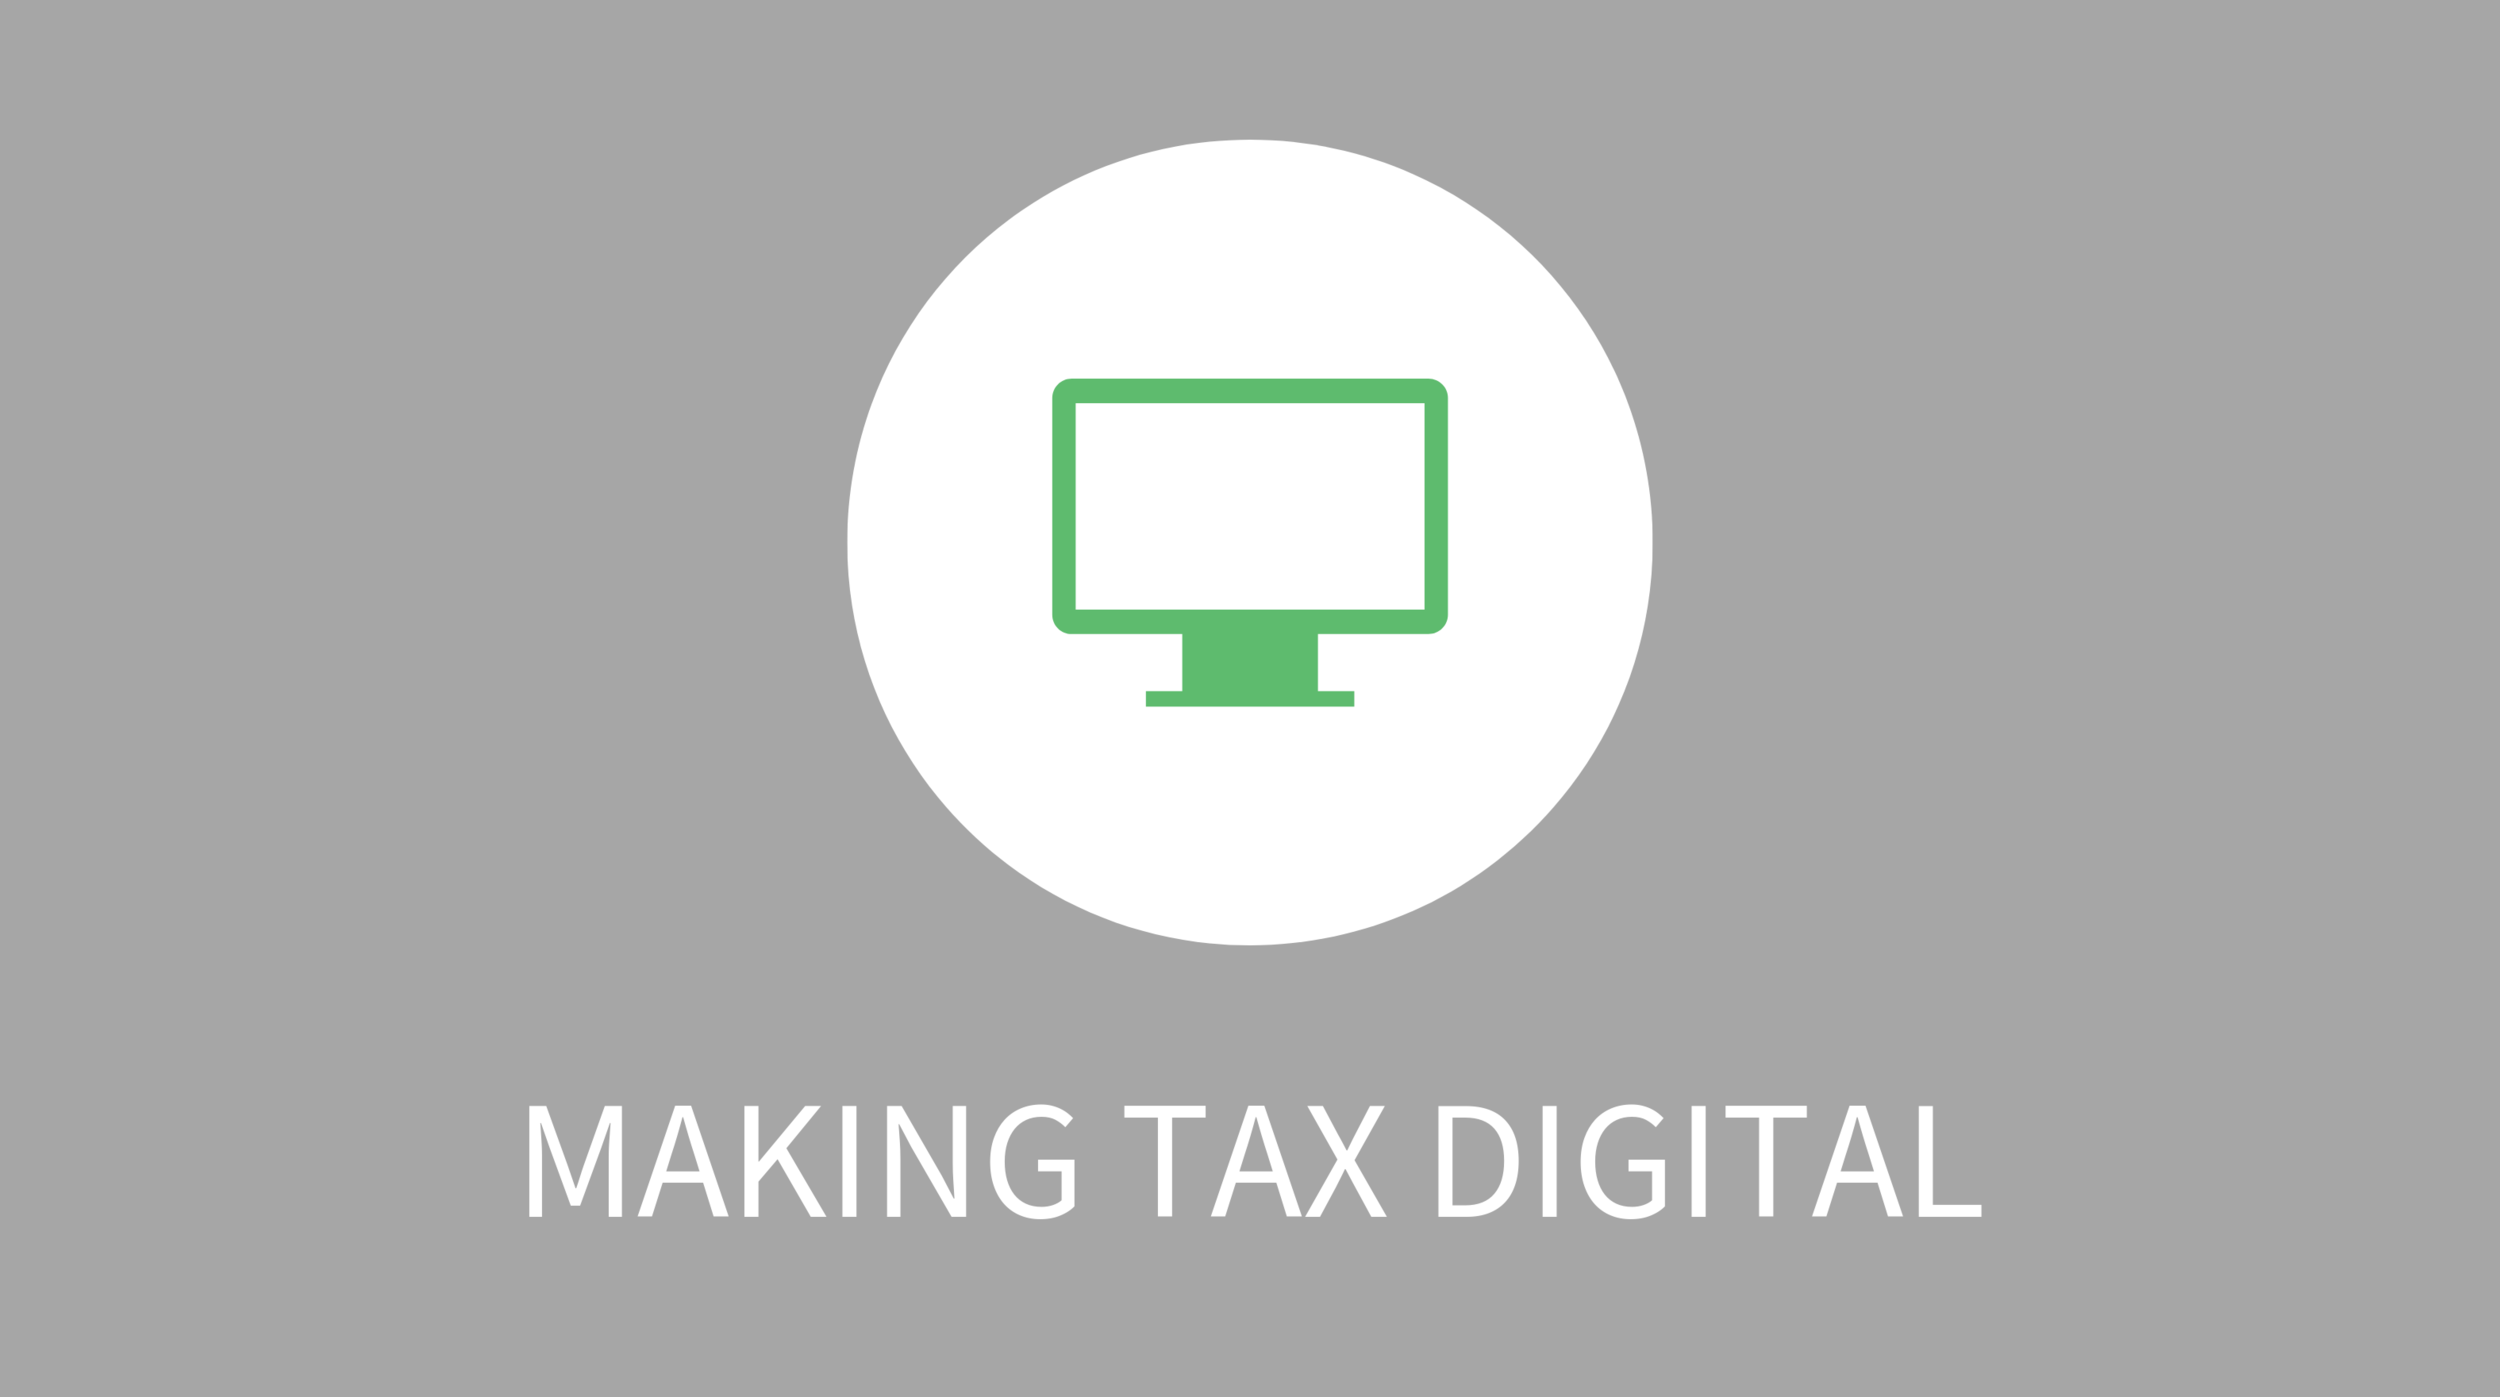 MAKING TAX DIGITAL.png